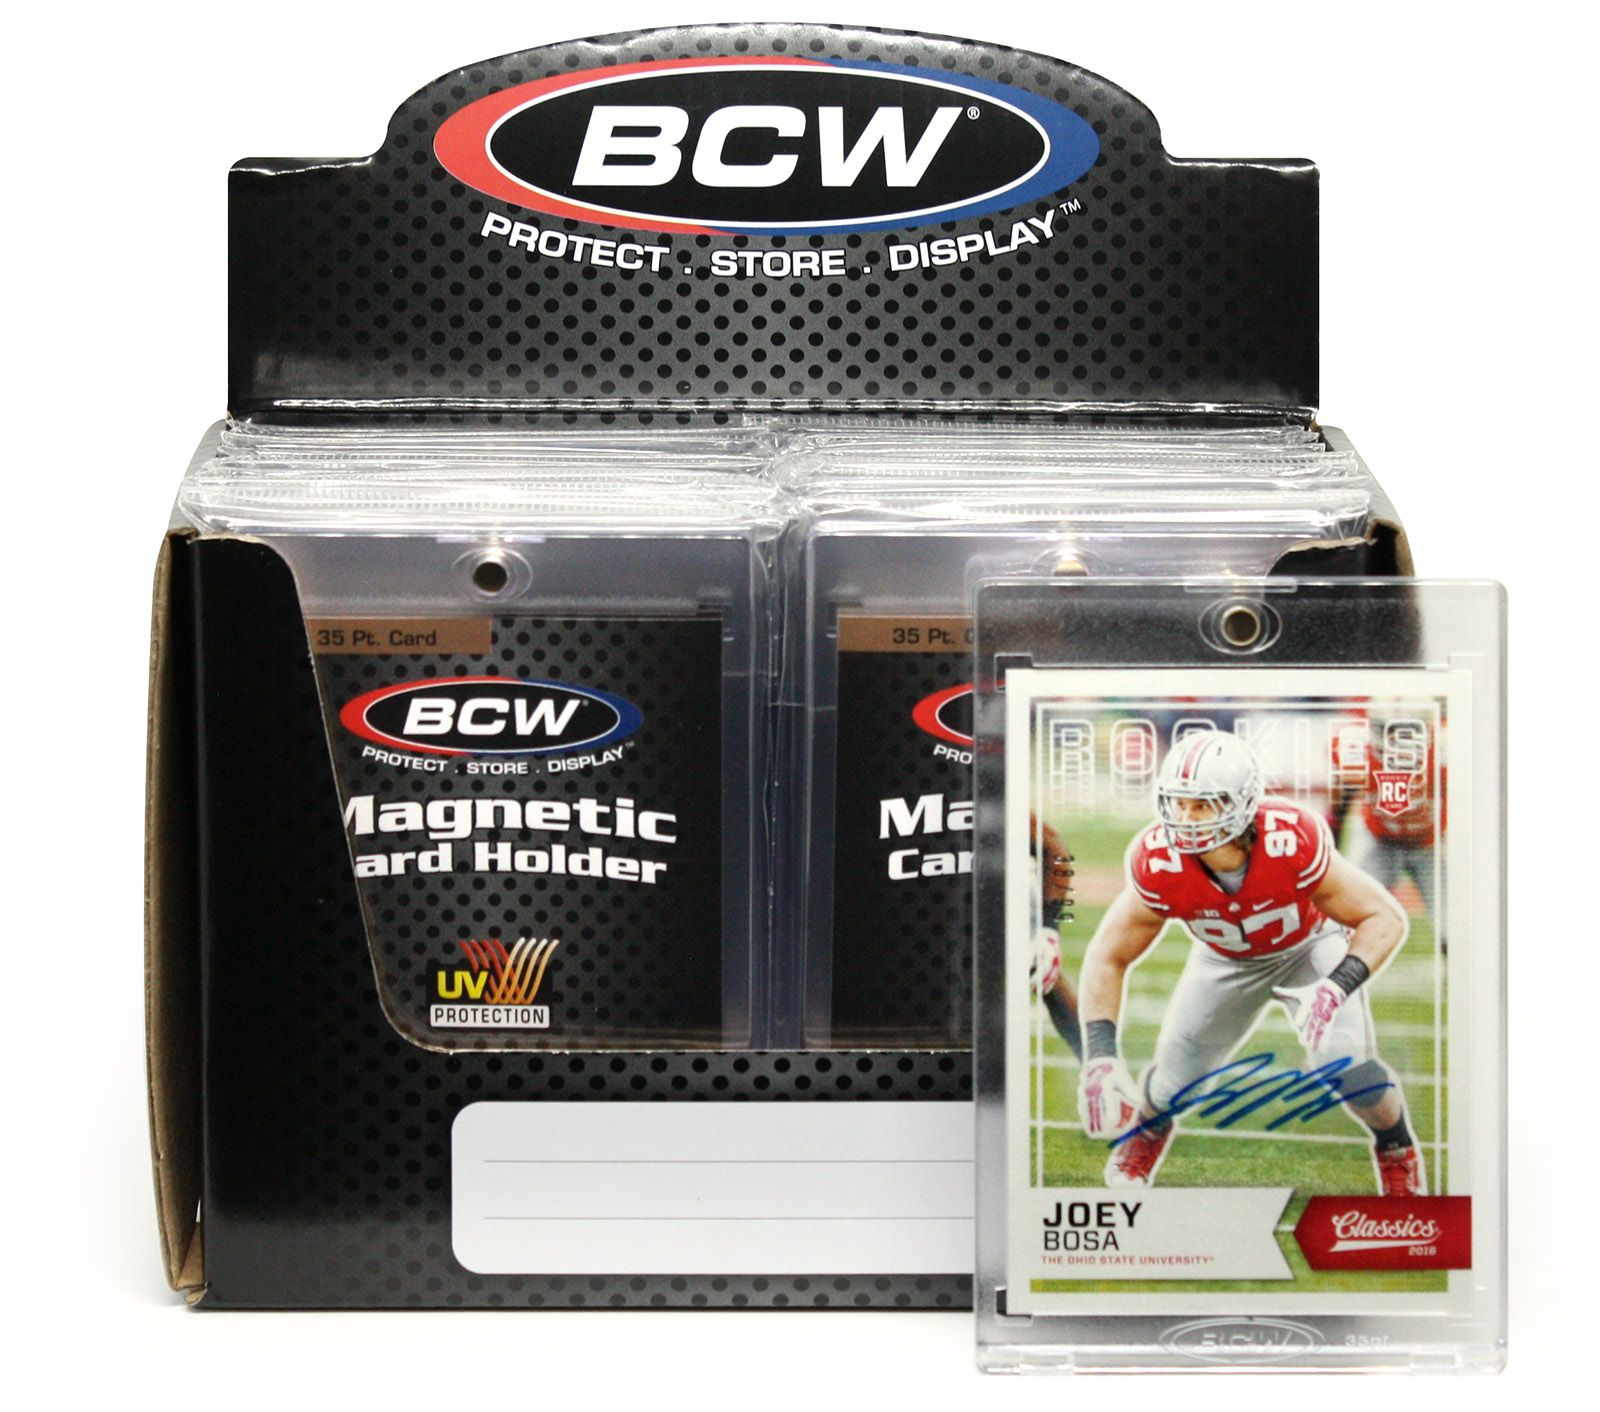 Bcw Magnetic Card Holders Are 2 Piece Design Holders That